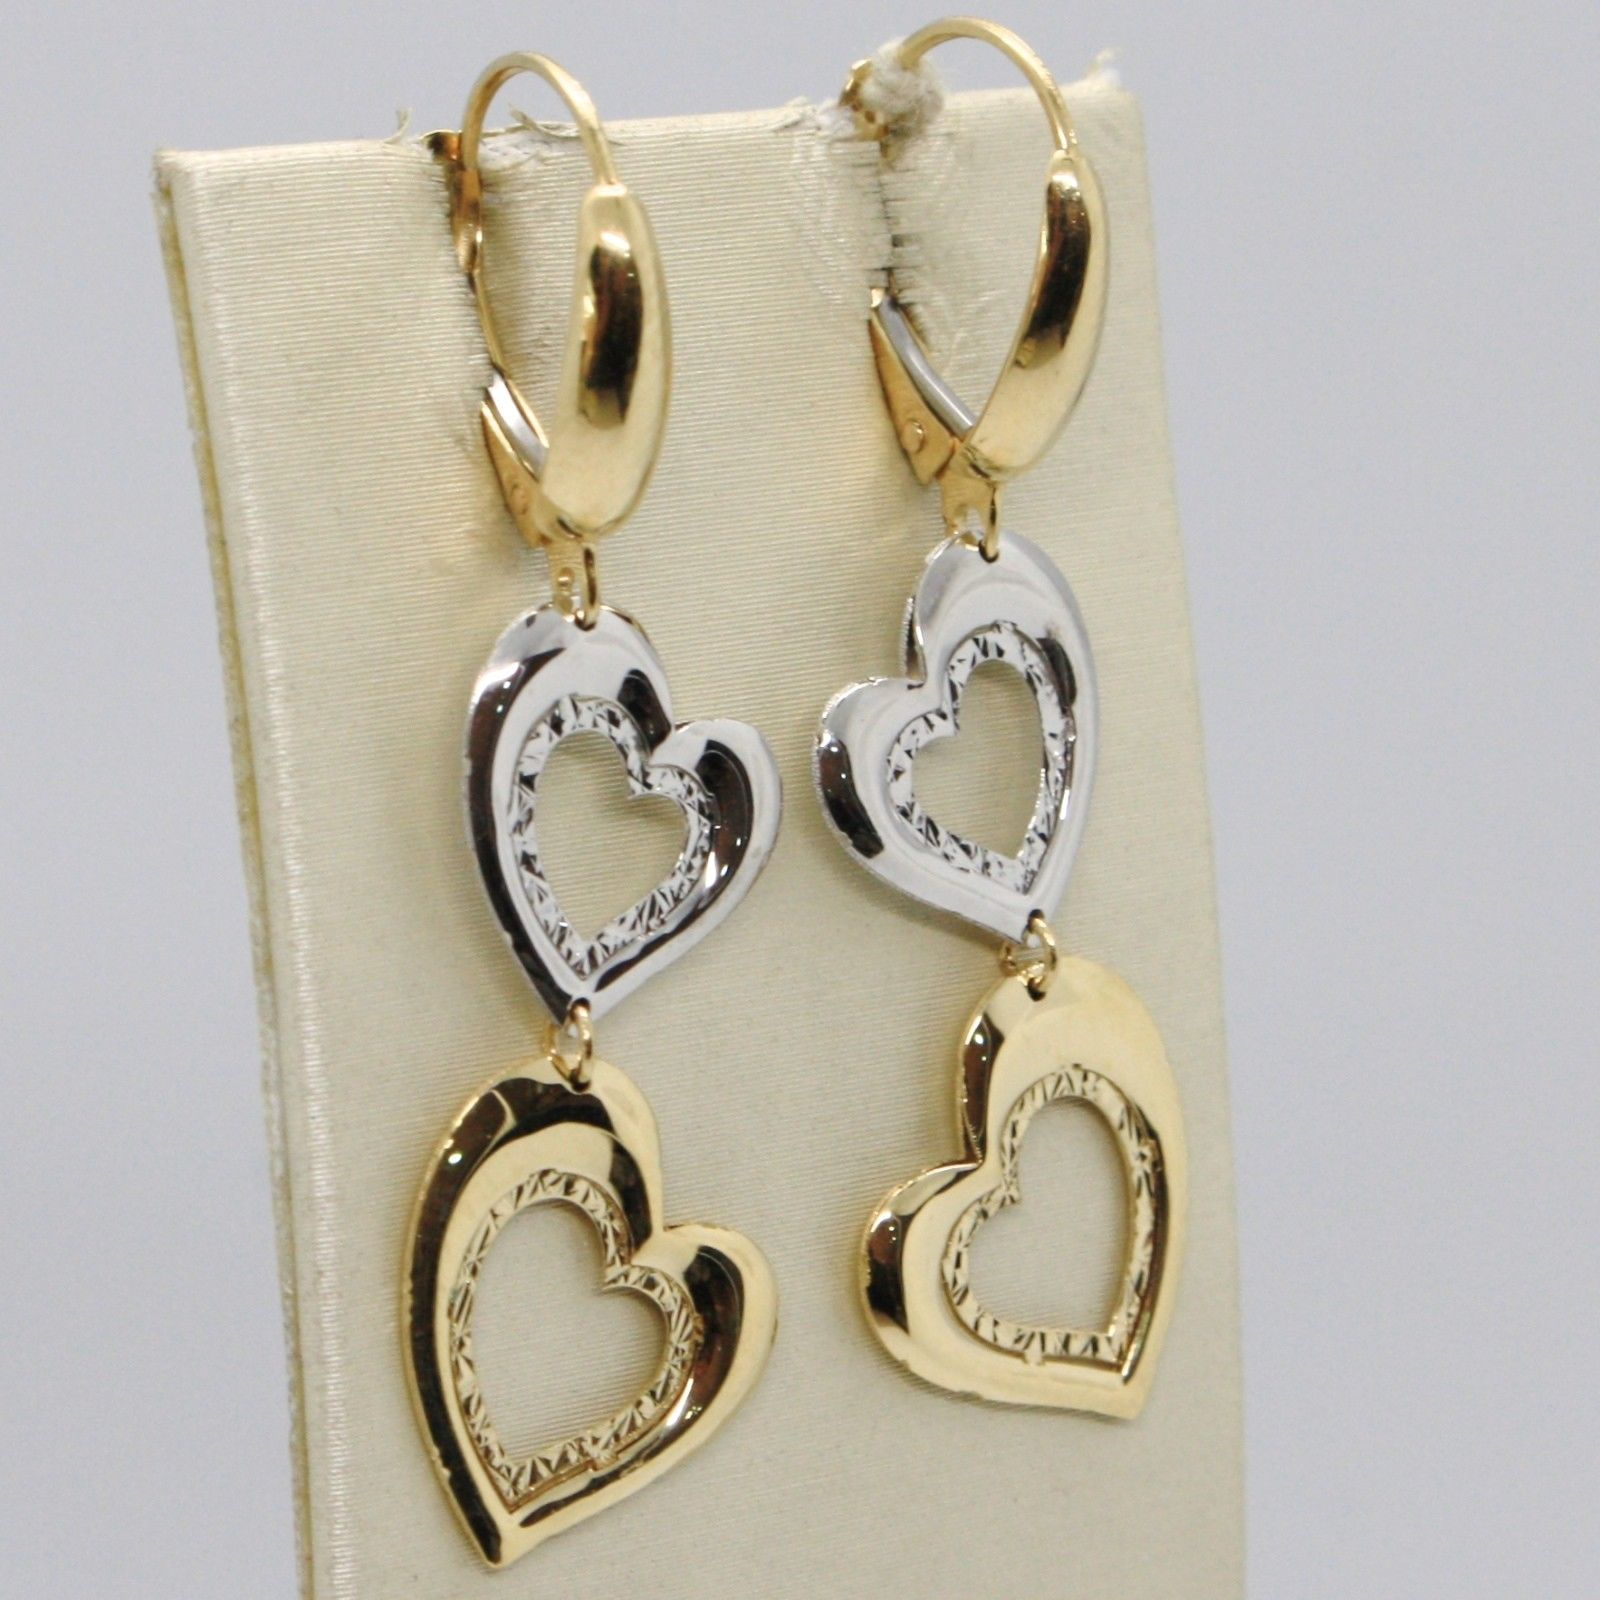 18K YELLOW WHITE GOLD PENDANT EARRINGS, DOUBLE WORKED HEARTS, MADE IN ITALY